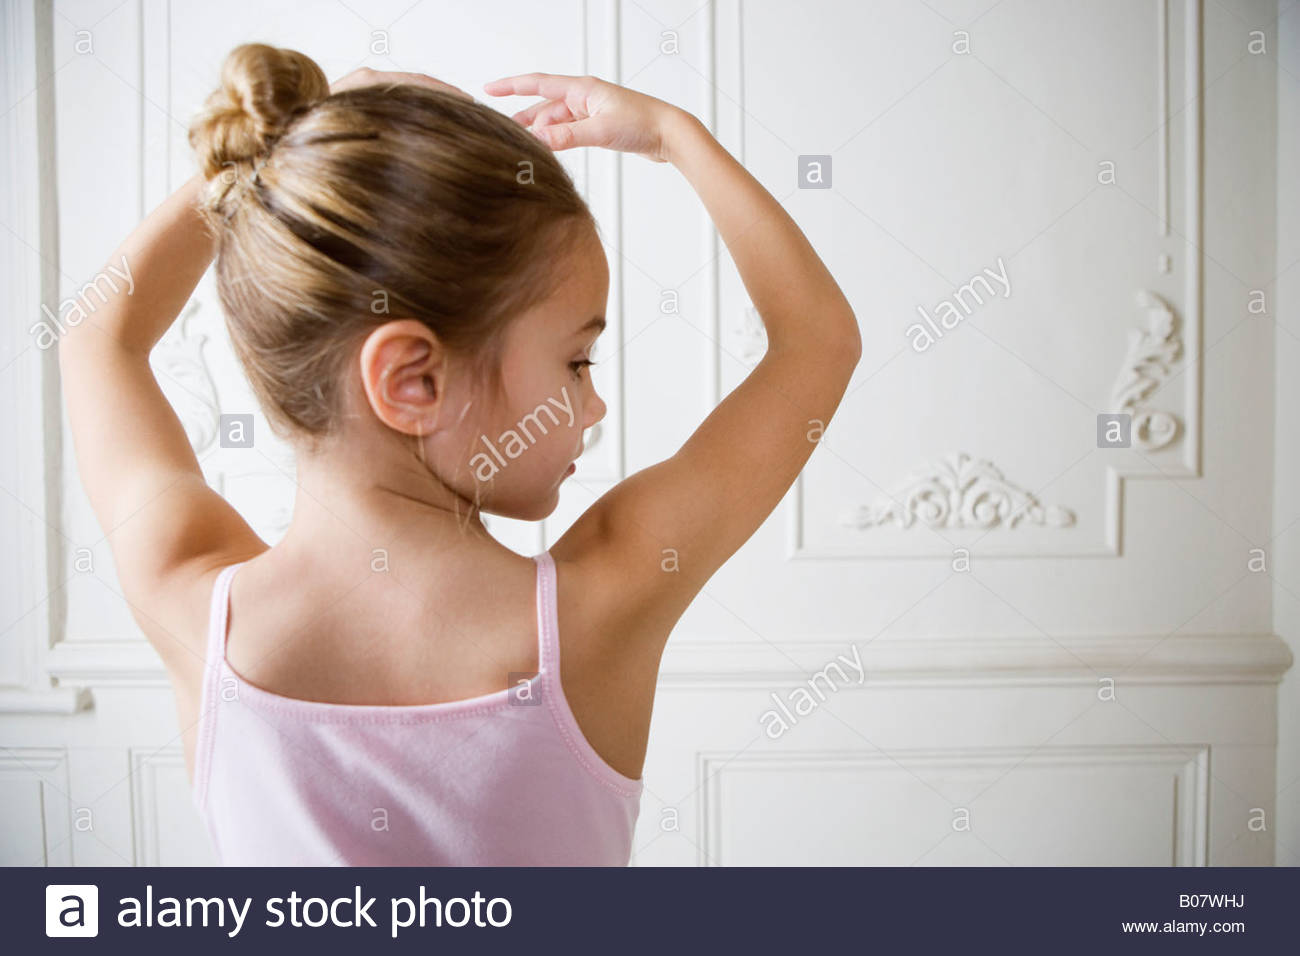 Young girl performing a ballet move Stock Photo